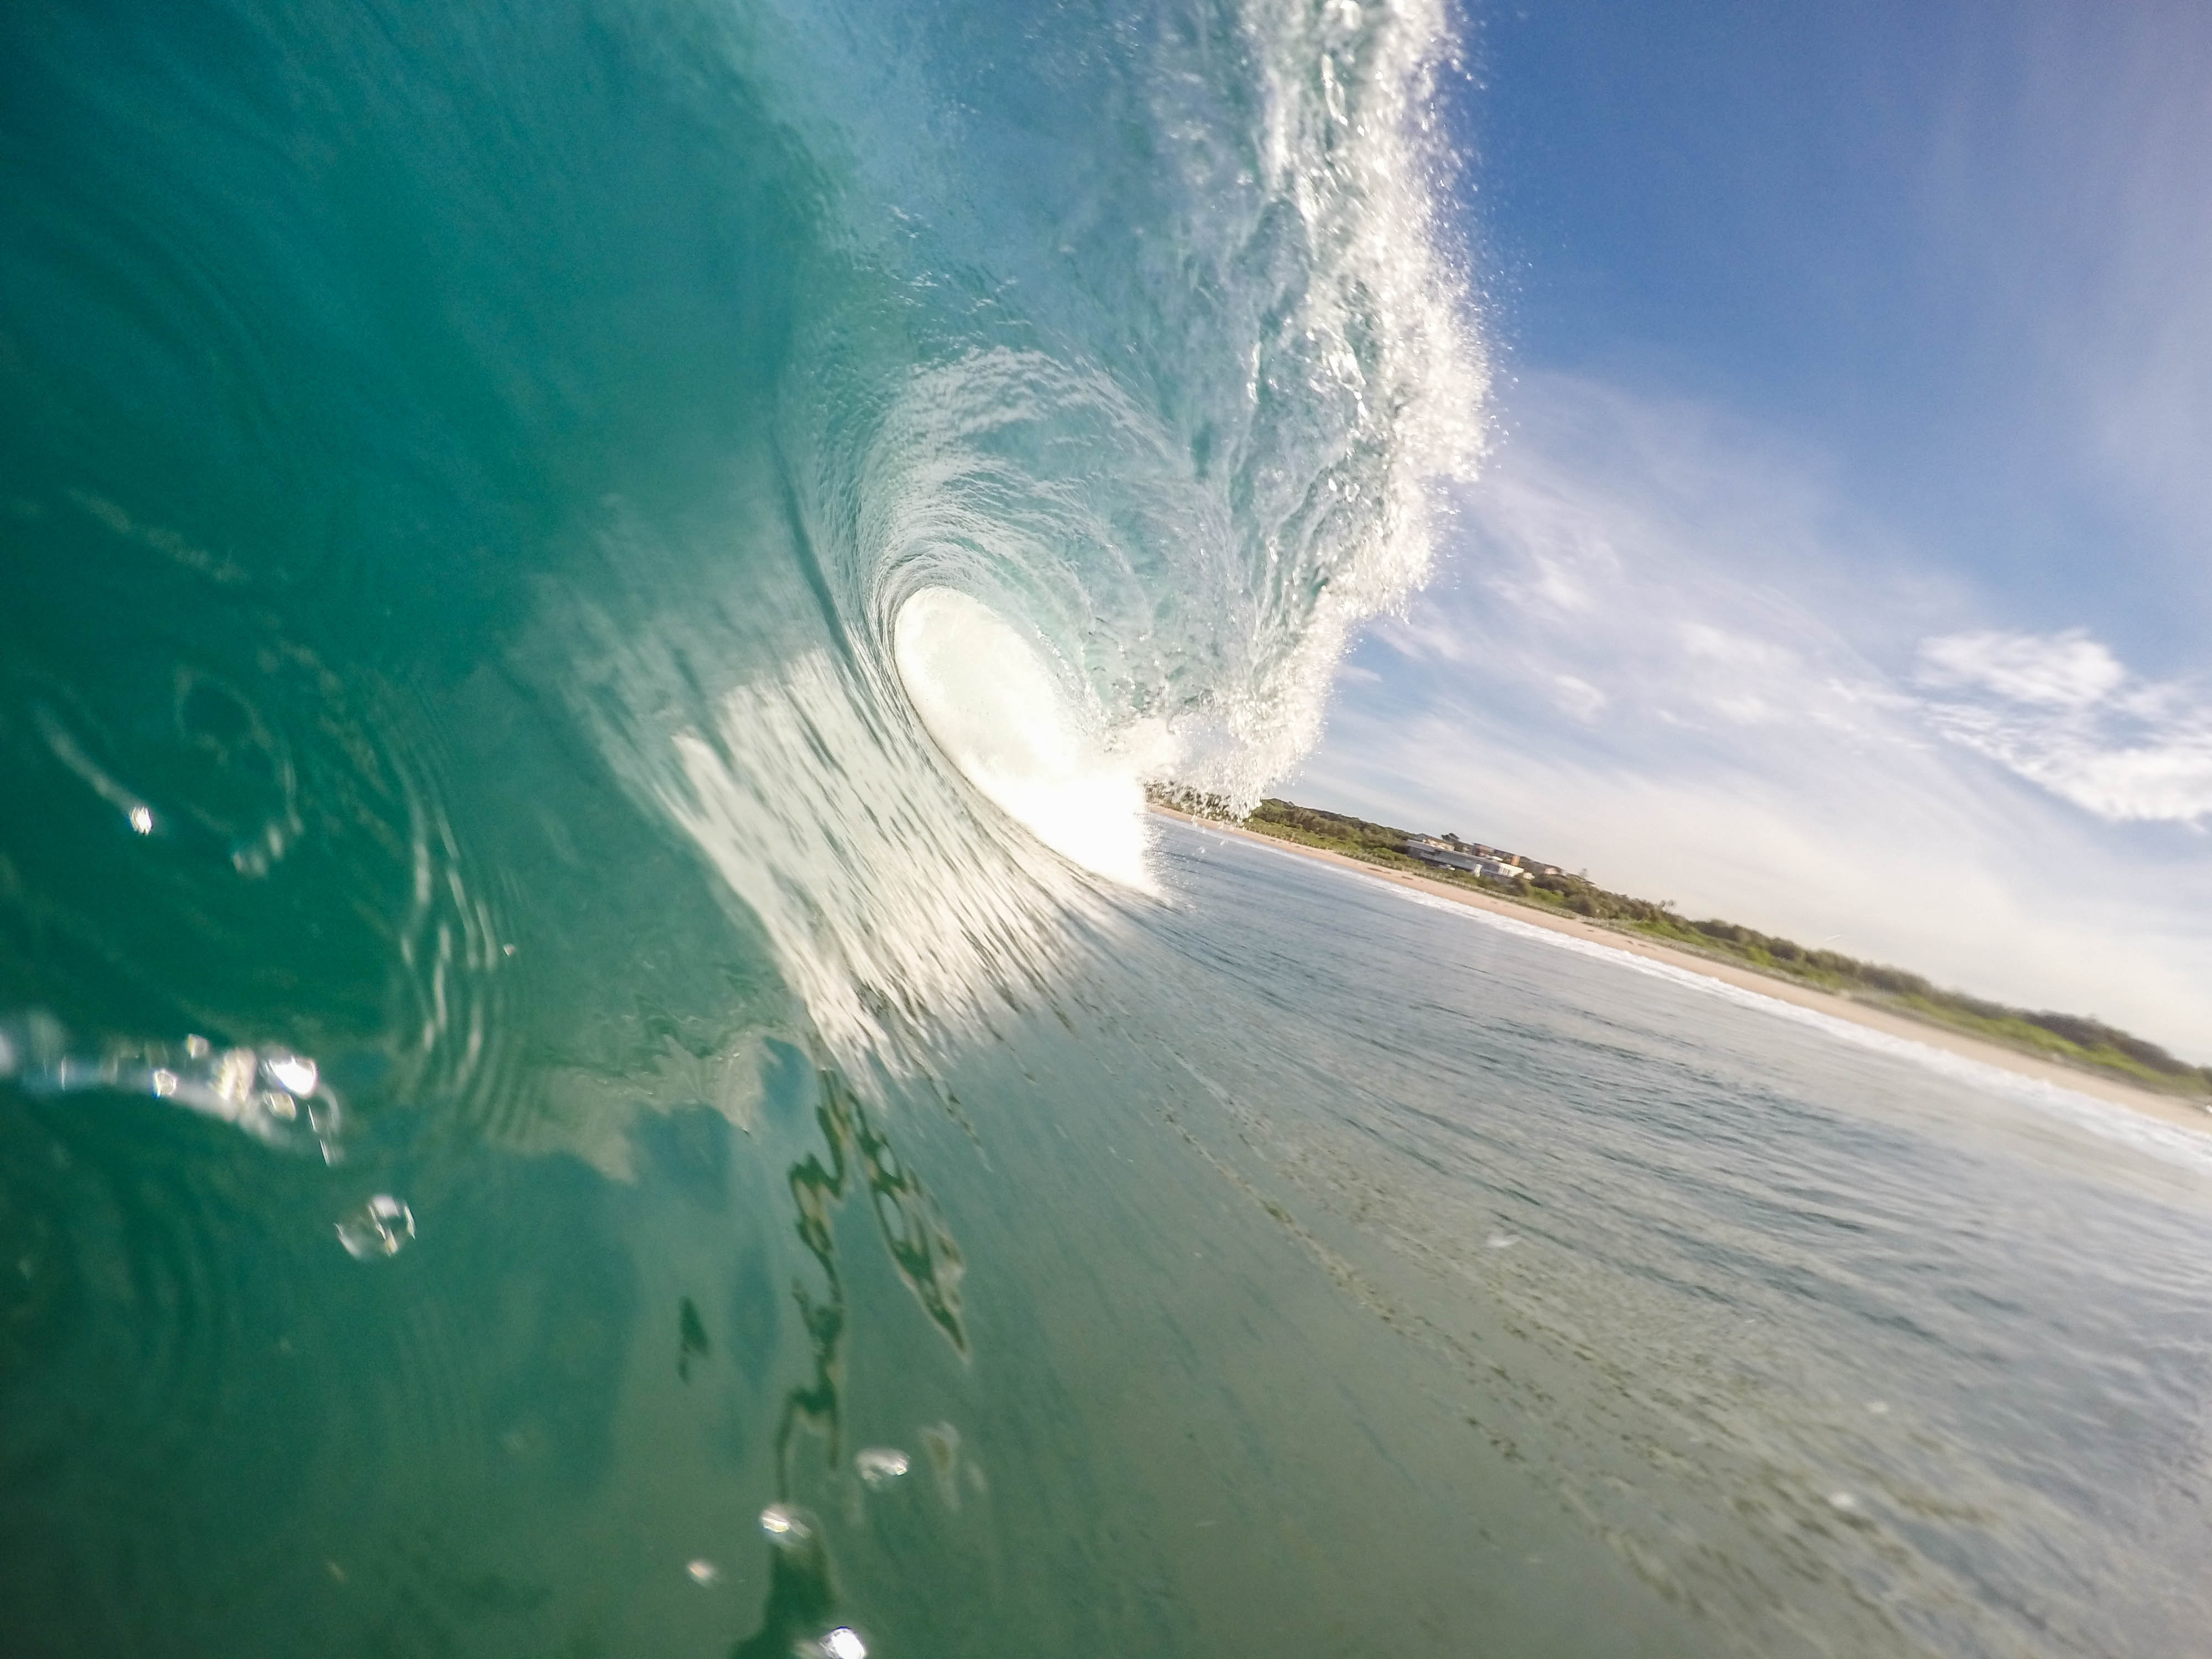 A close up view of a clear wave.